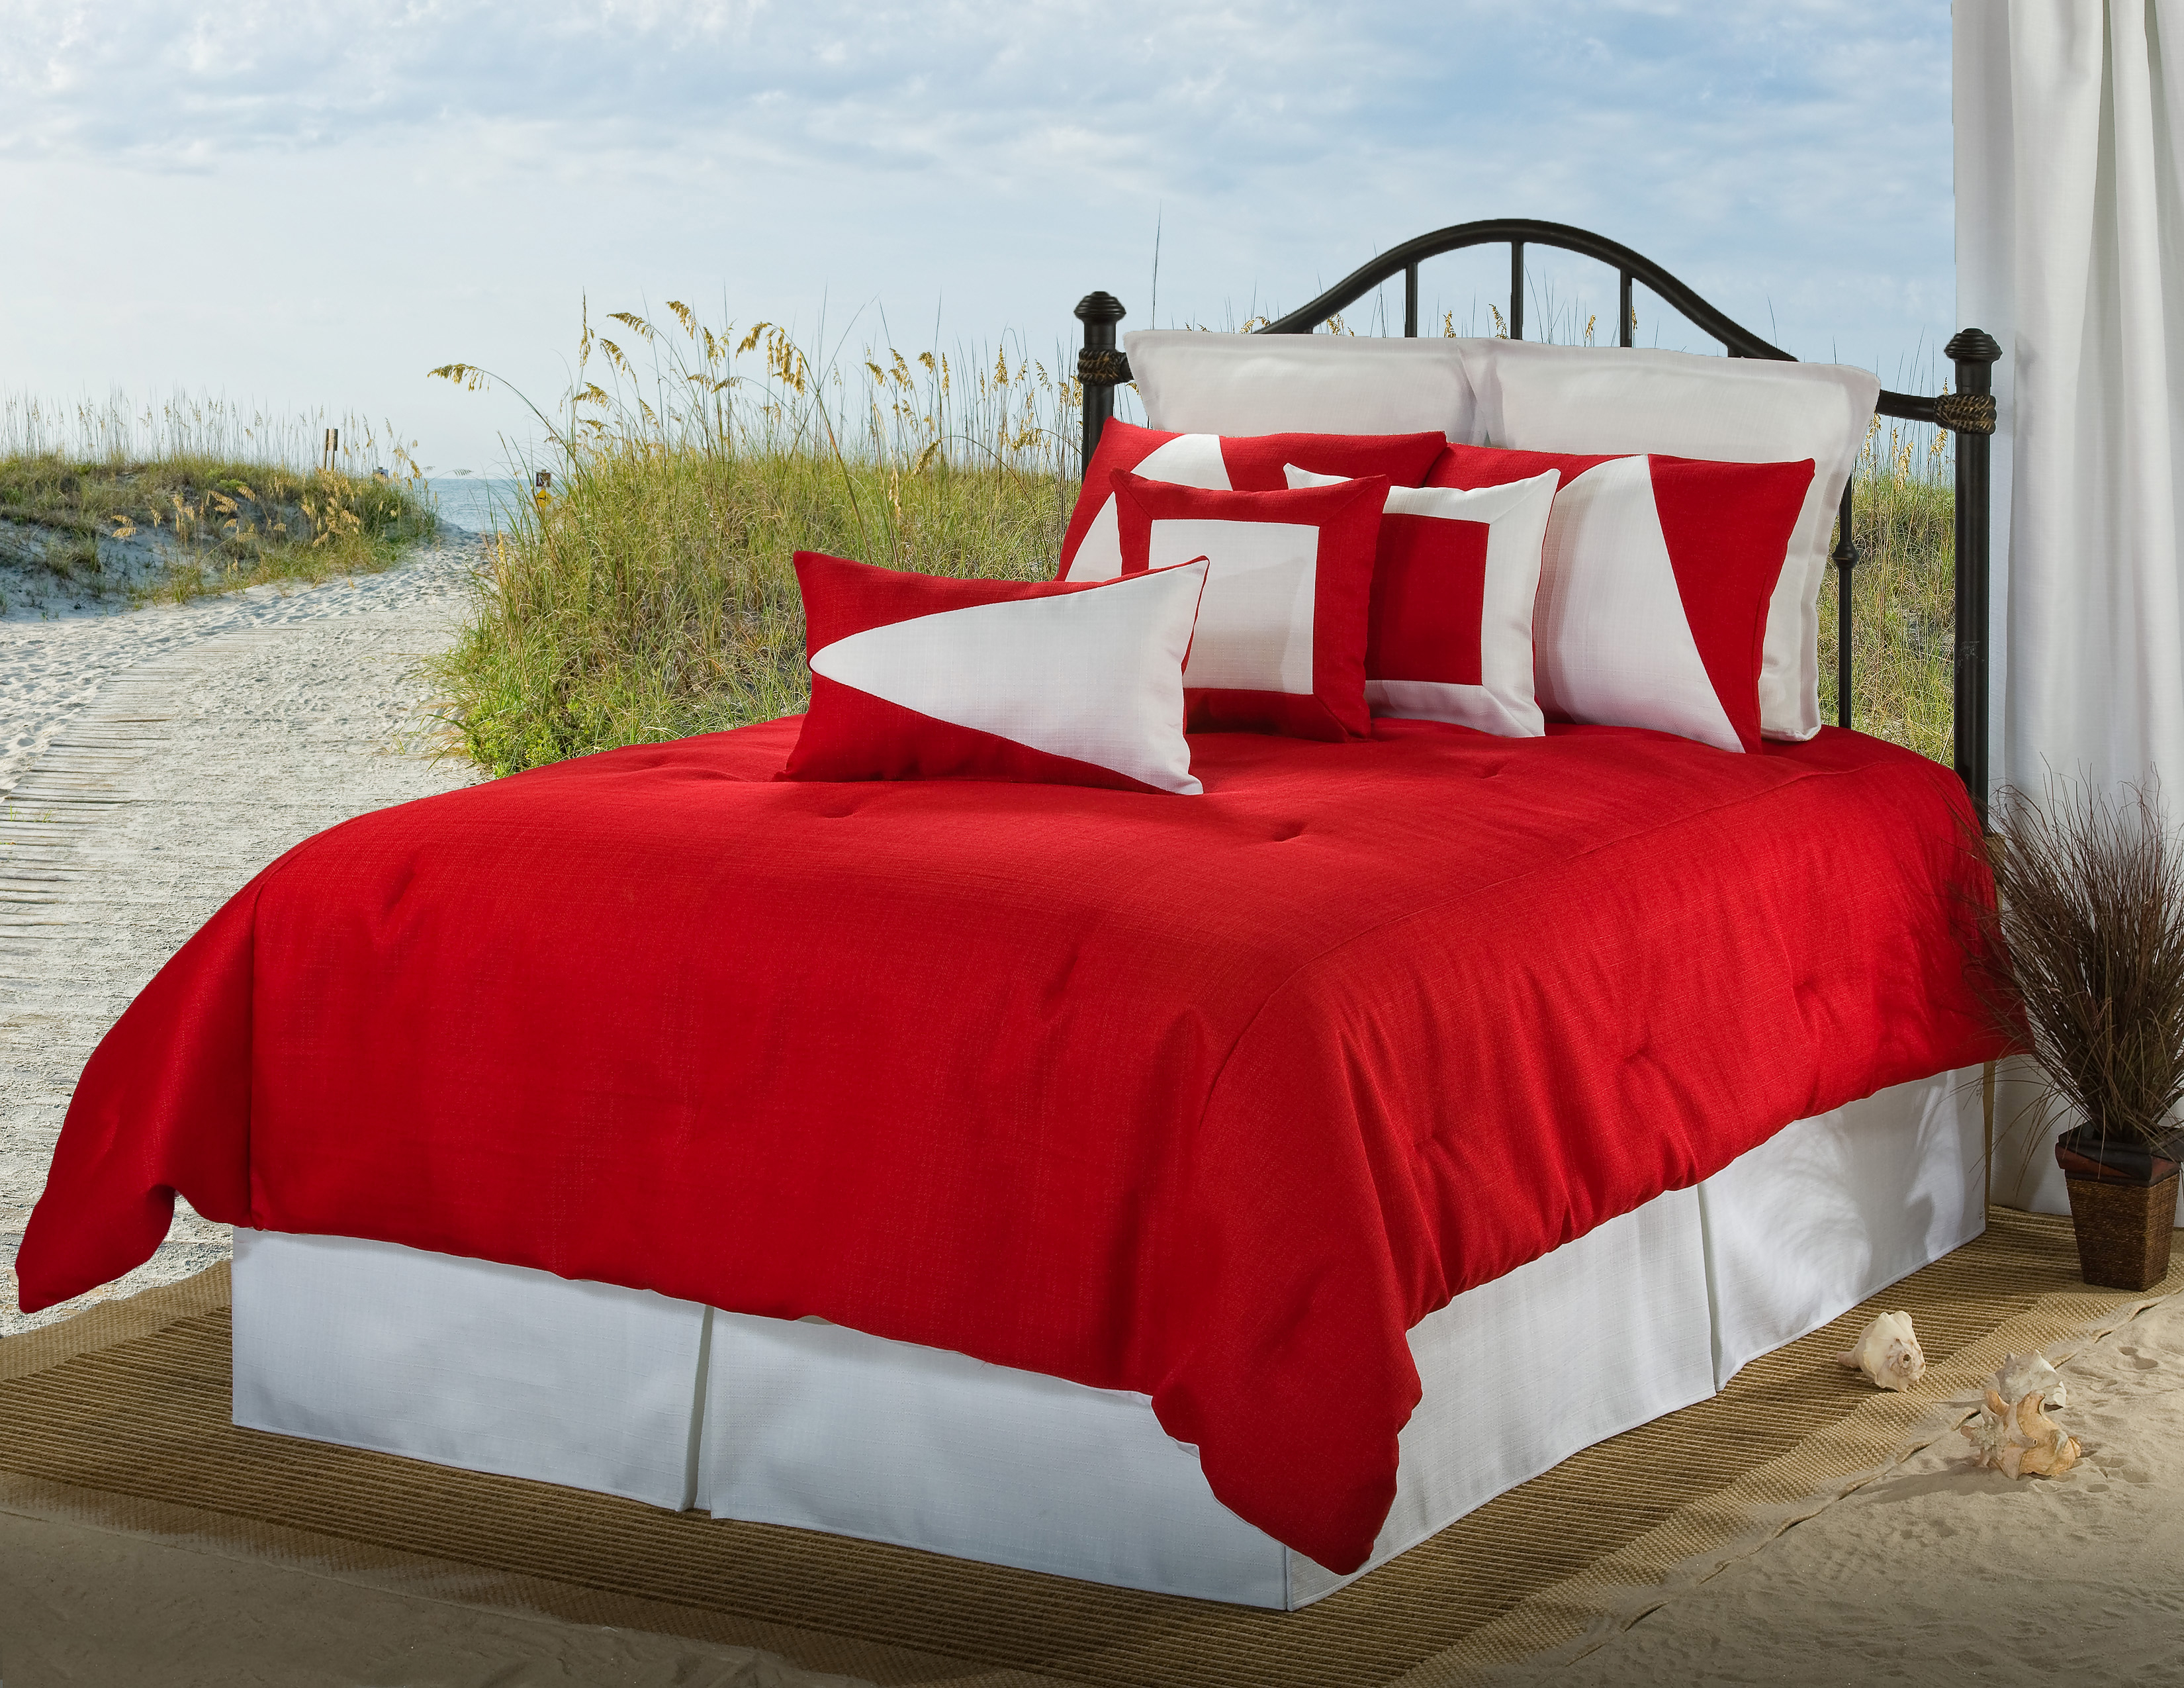 White and red bed sheets - Red White Lattitude Comforter Duvet Cover Sets American Home Fashion Duvet Covers Comforters Comforter Covers Sports Bedding